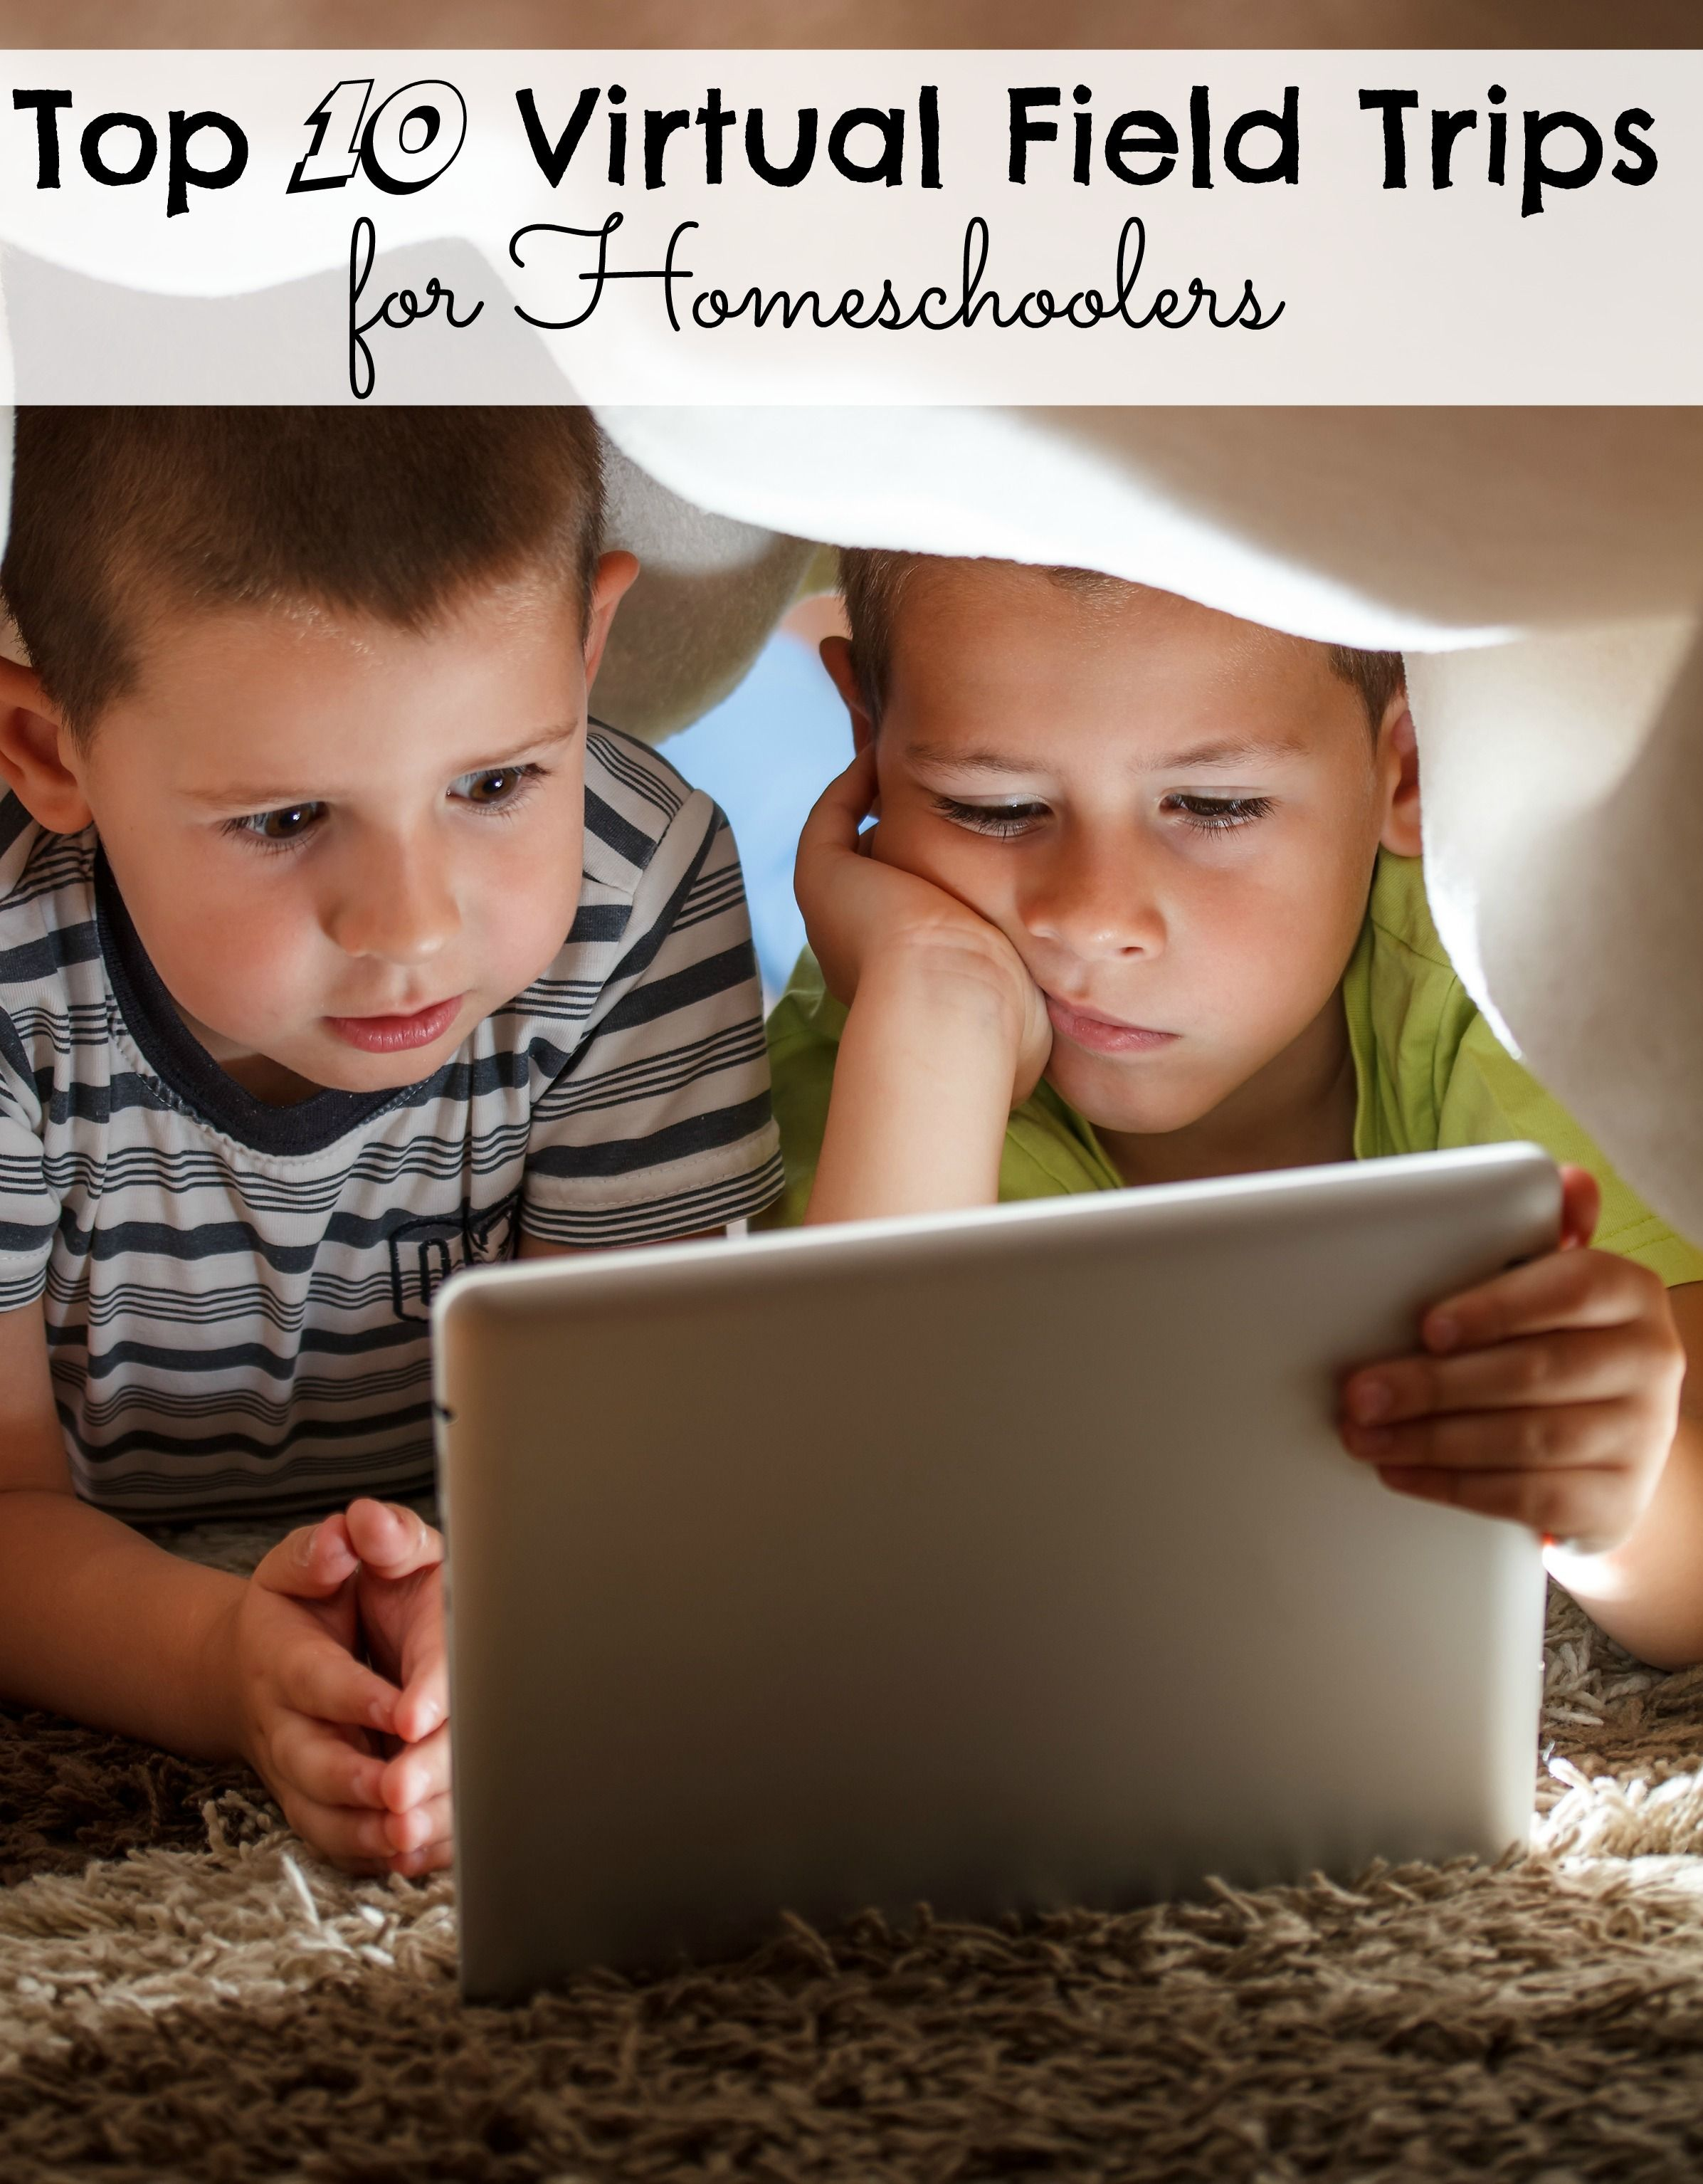 Top 10 Virtual Field Trips For Homeschoolers With Images